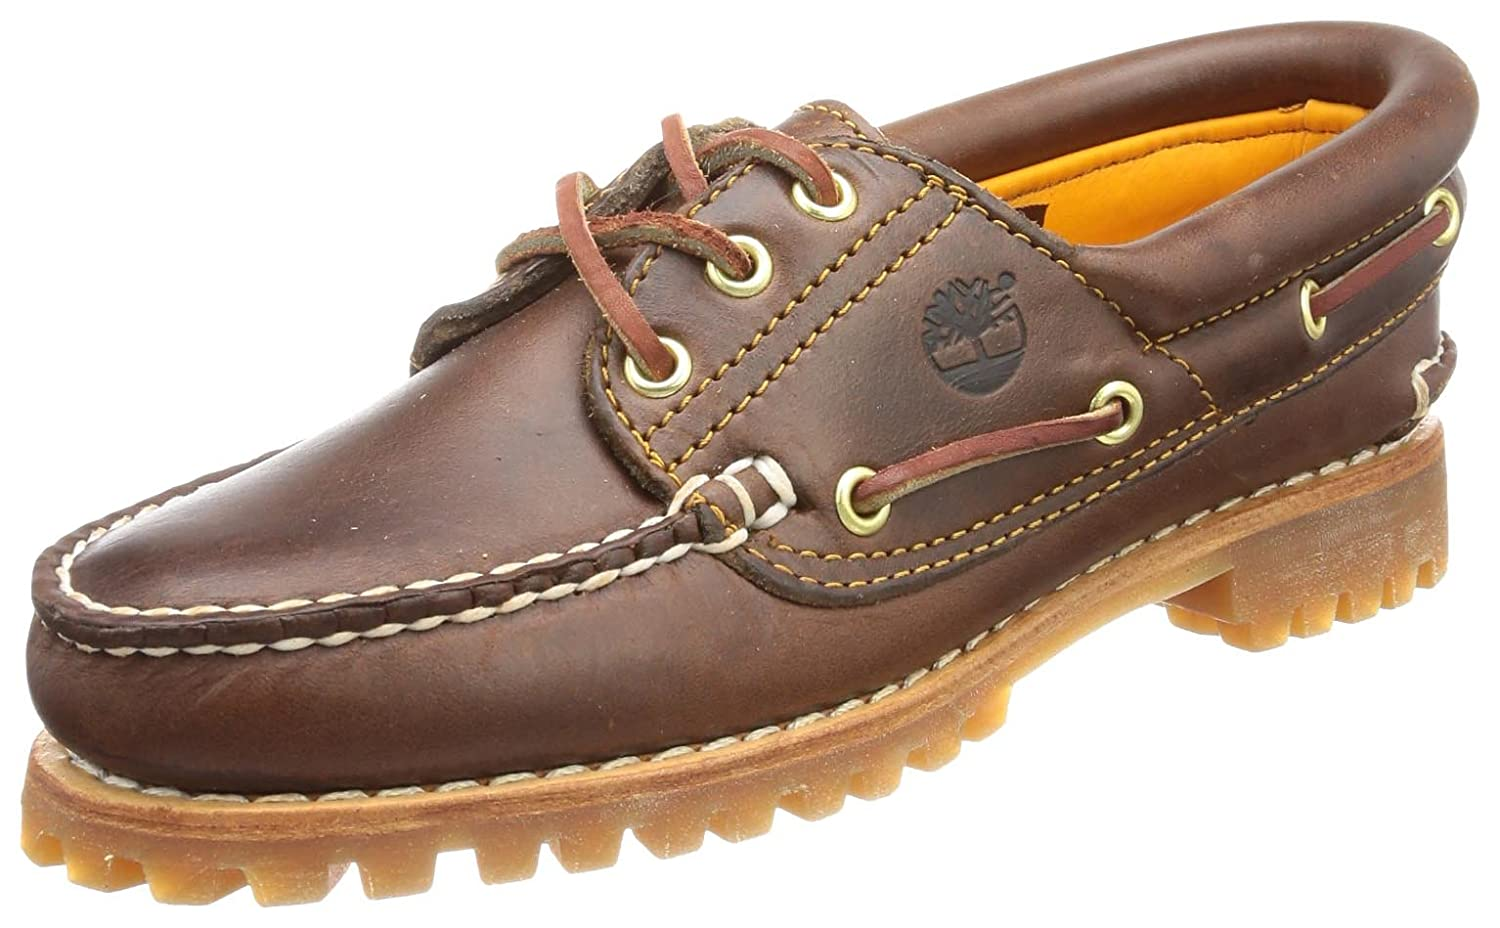 Timberland 51304 Heritage Noreen 3-Eye Noreen Handsewn, Mocassins Smooth) Femme, 18281 Marron (Brown Smooth) Marron (Brown Pull Up) b26c4a1 - shopssong.space